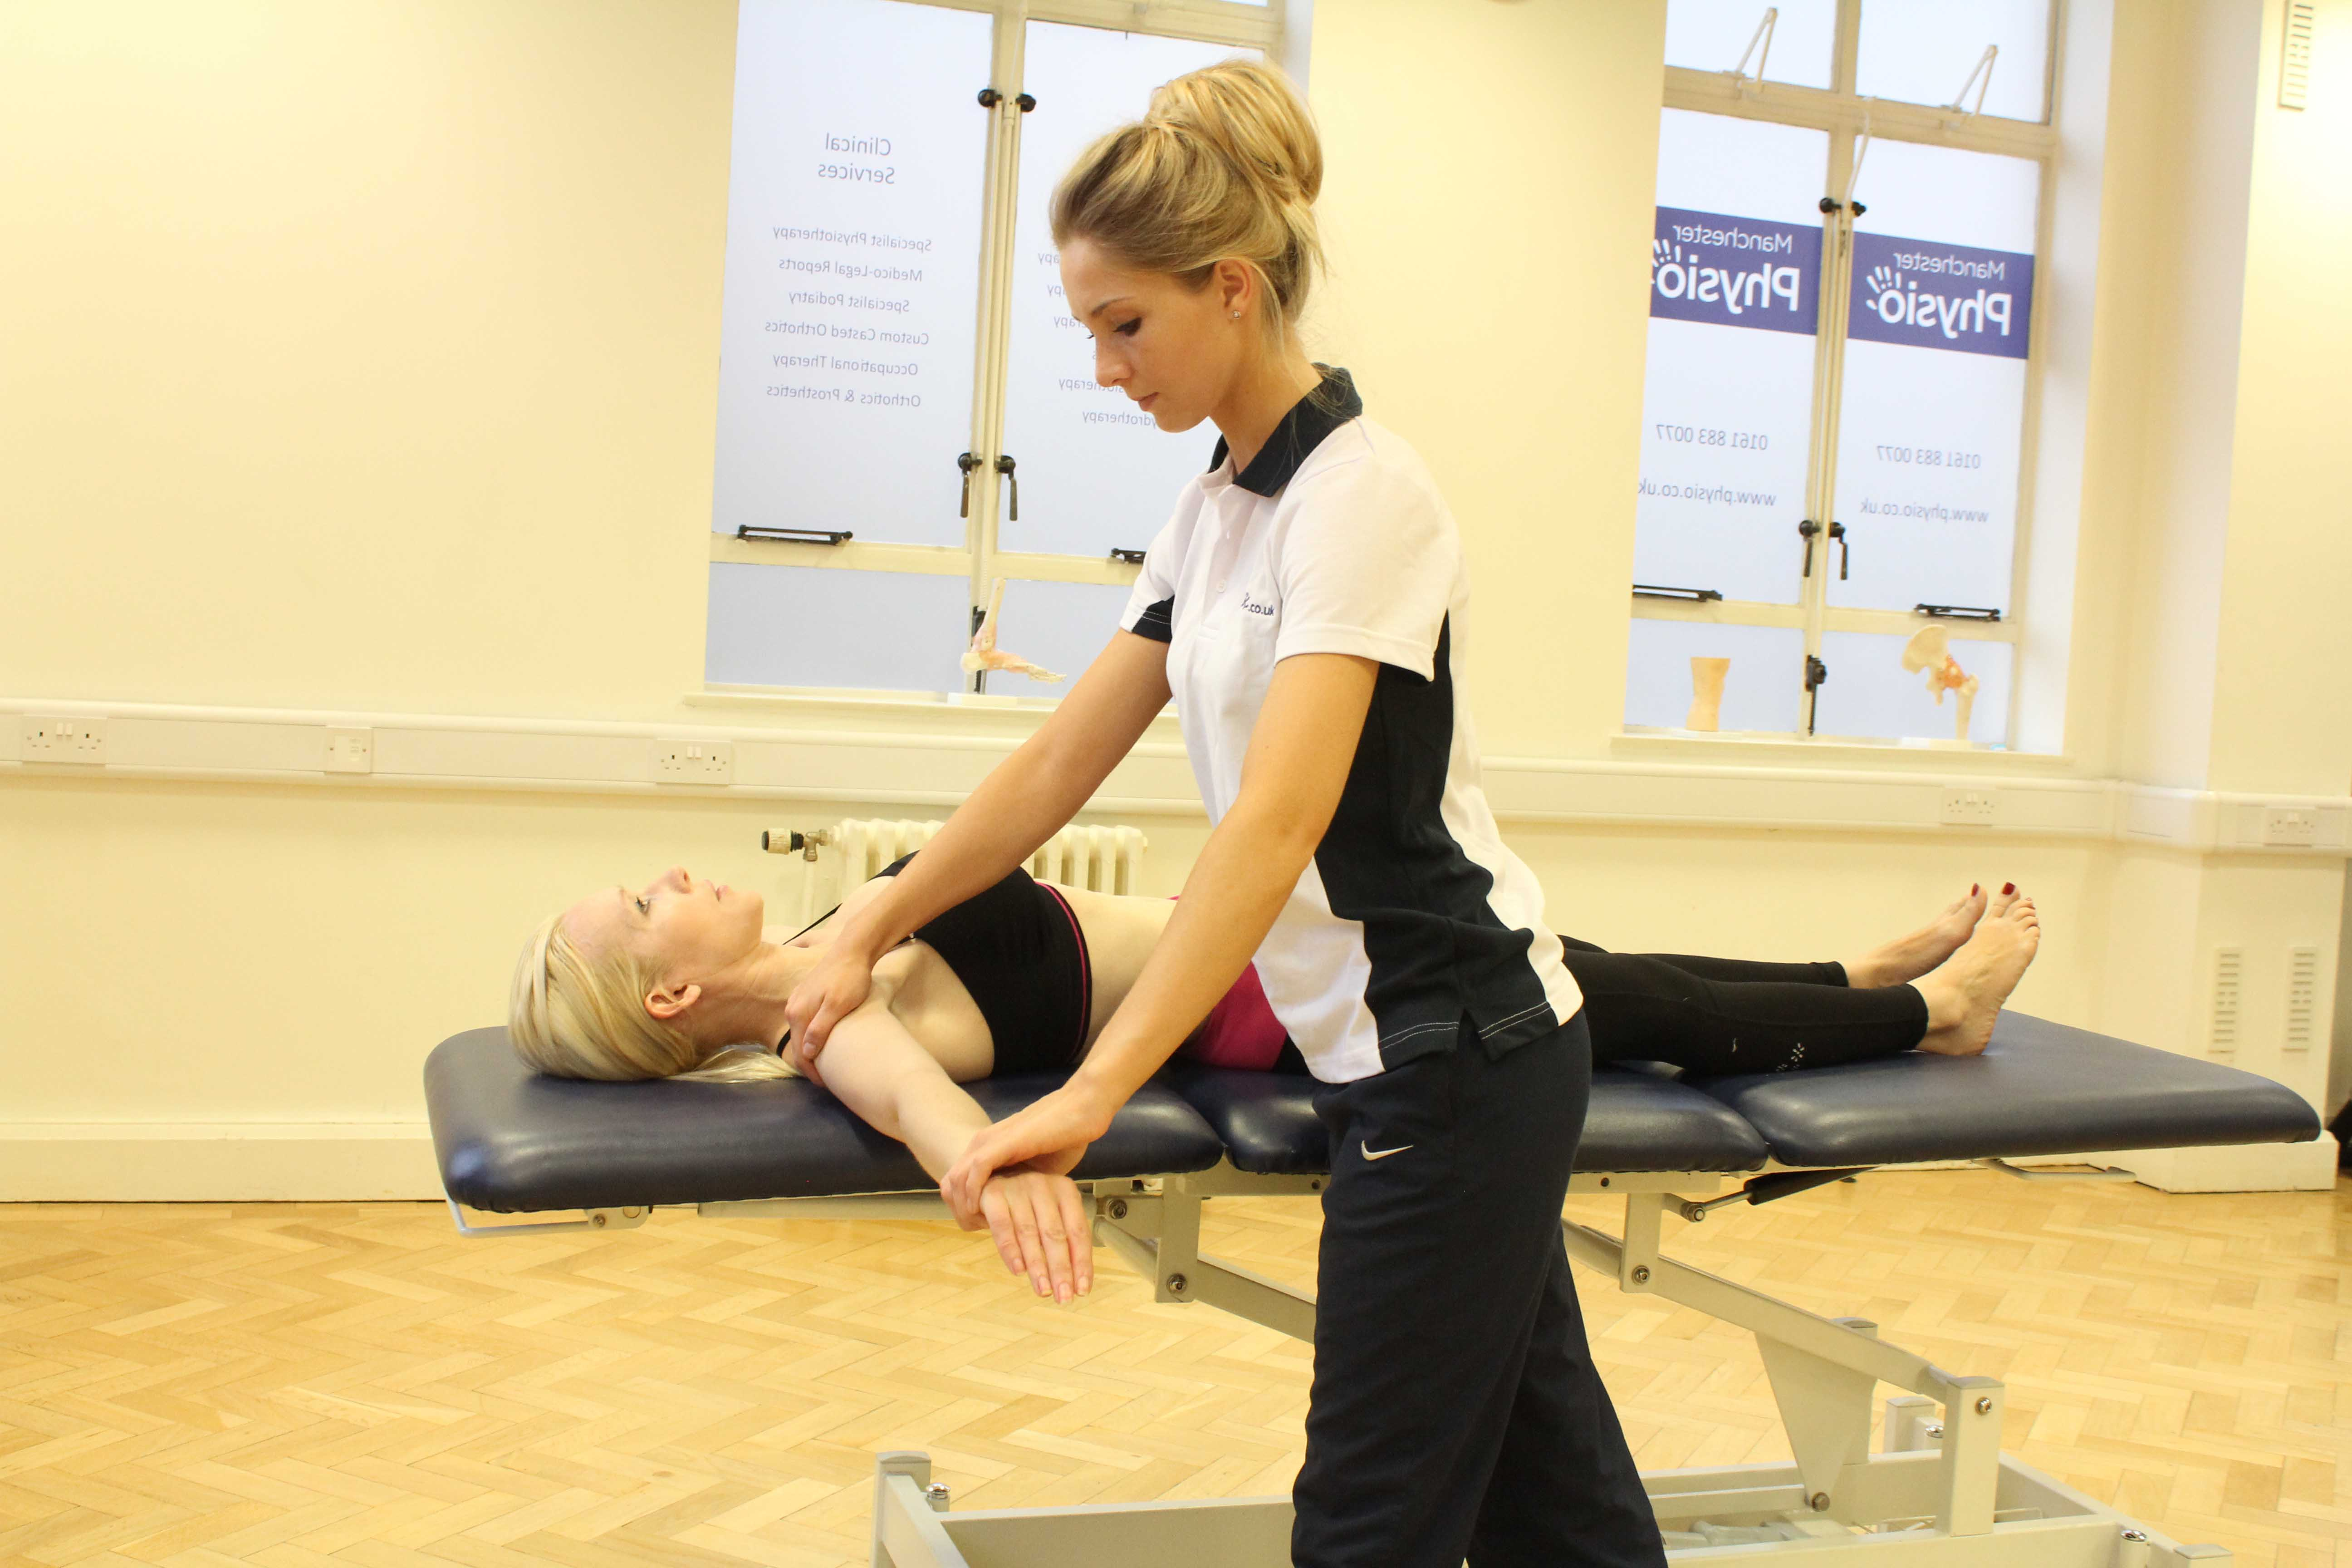 Massage and mobilisations of the arm and shoulder by a specilaist massage therapist